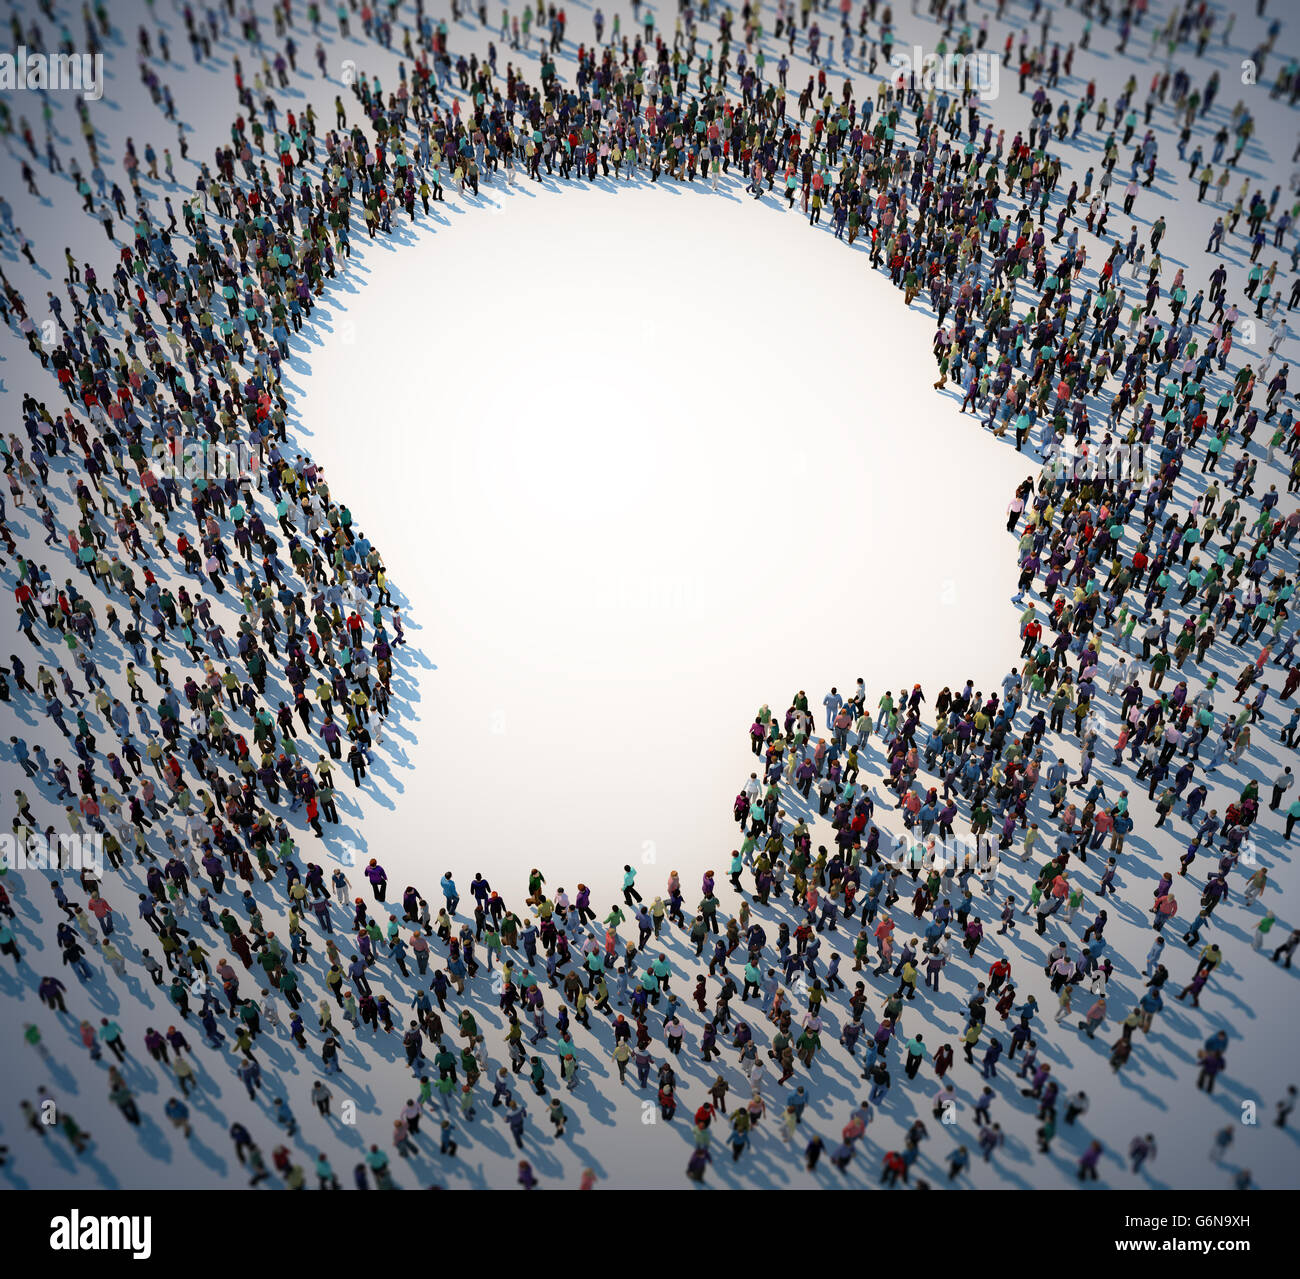 Large group of people forming a head symbol - 3D illustration - Stock Image